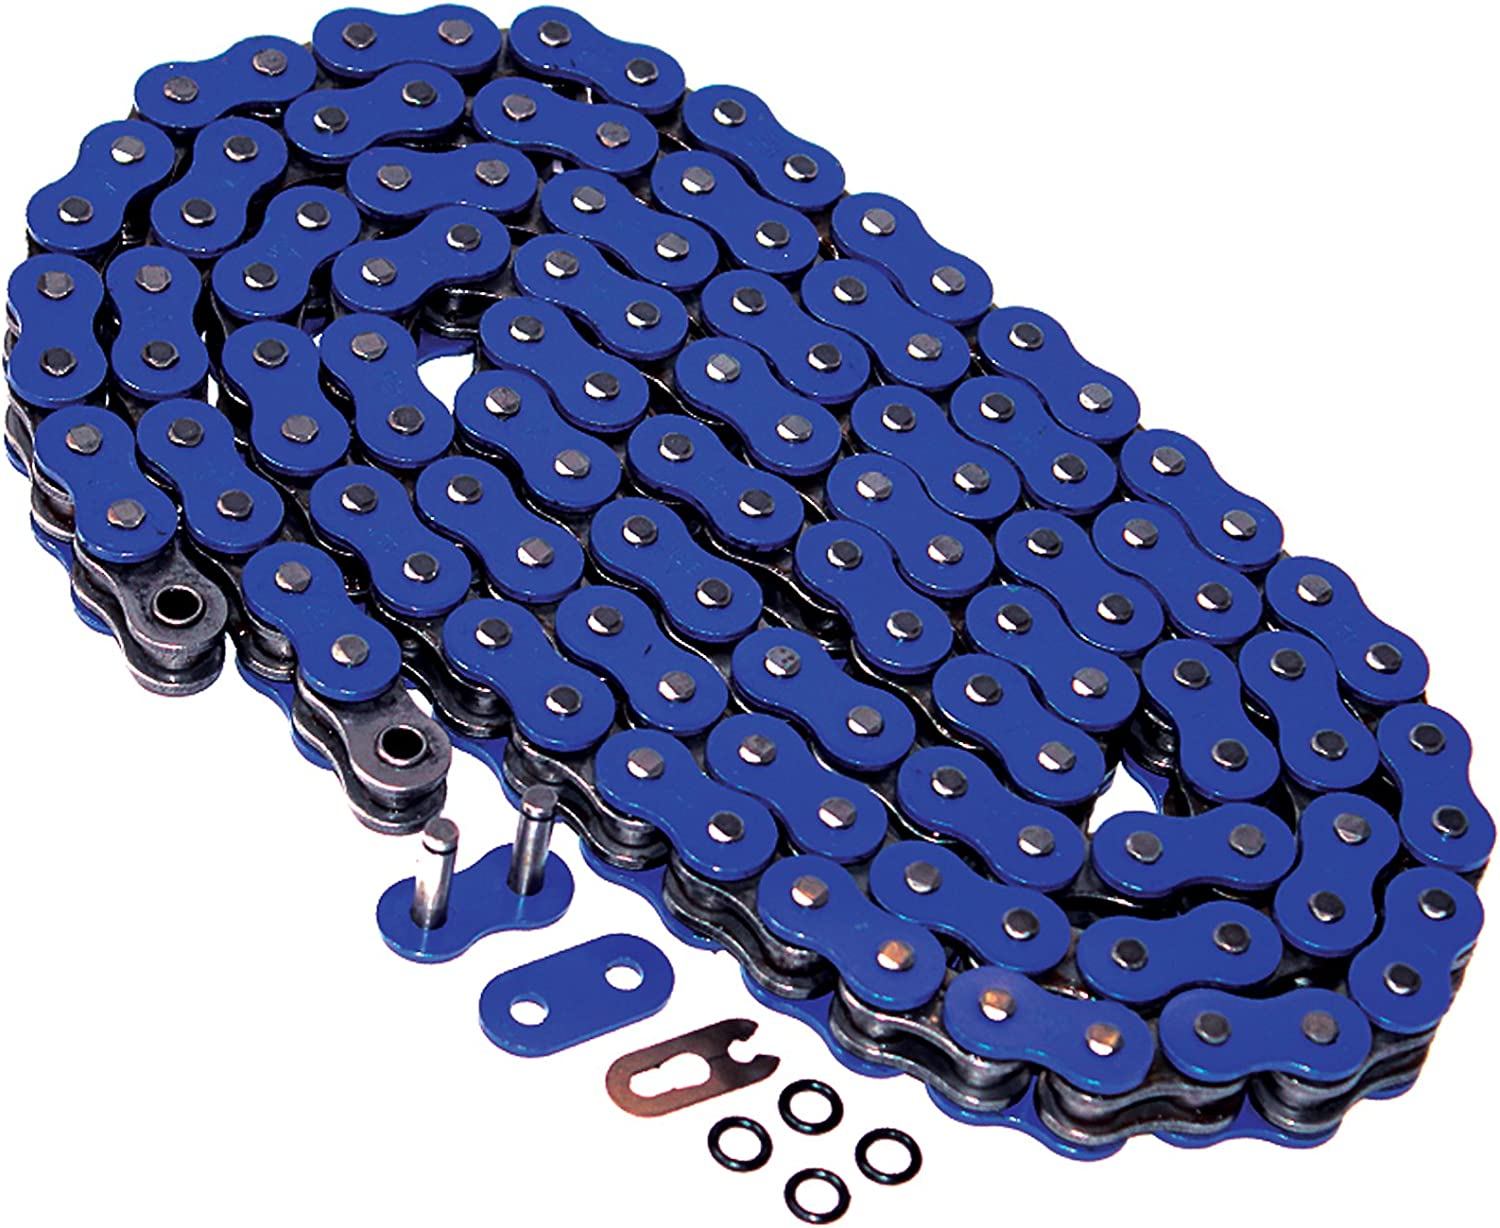 O-RING Blue DRIVE CHAIN Fits YAMAHA RAPTOR 700 YFM700R SE 2006-2013